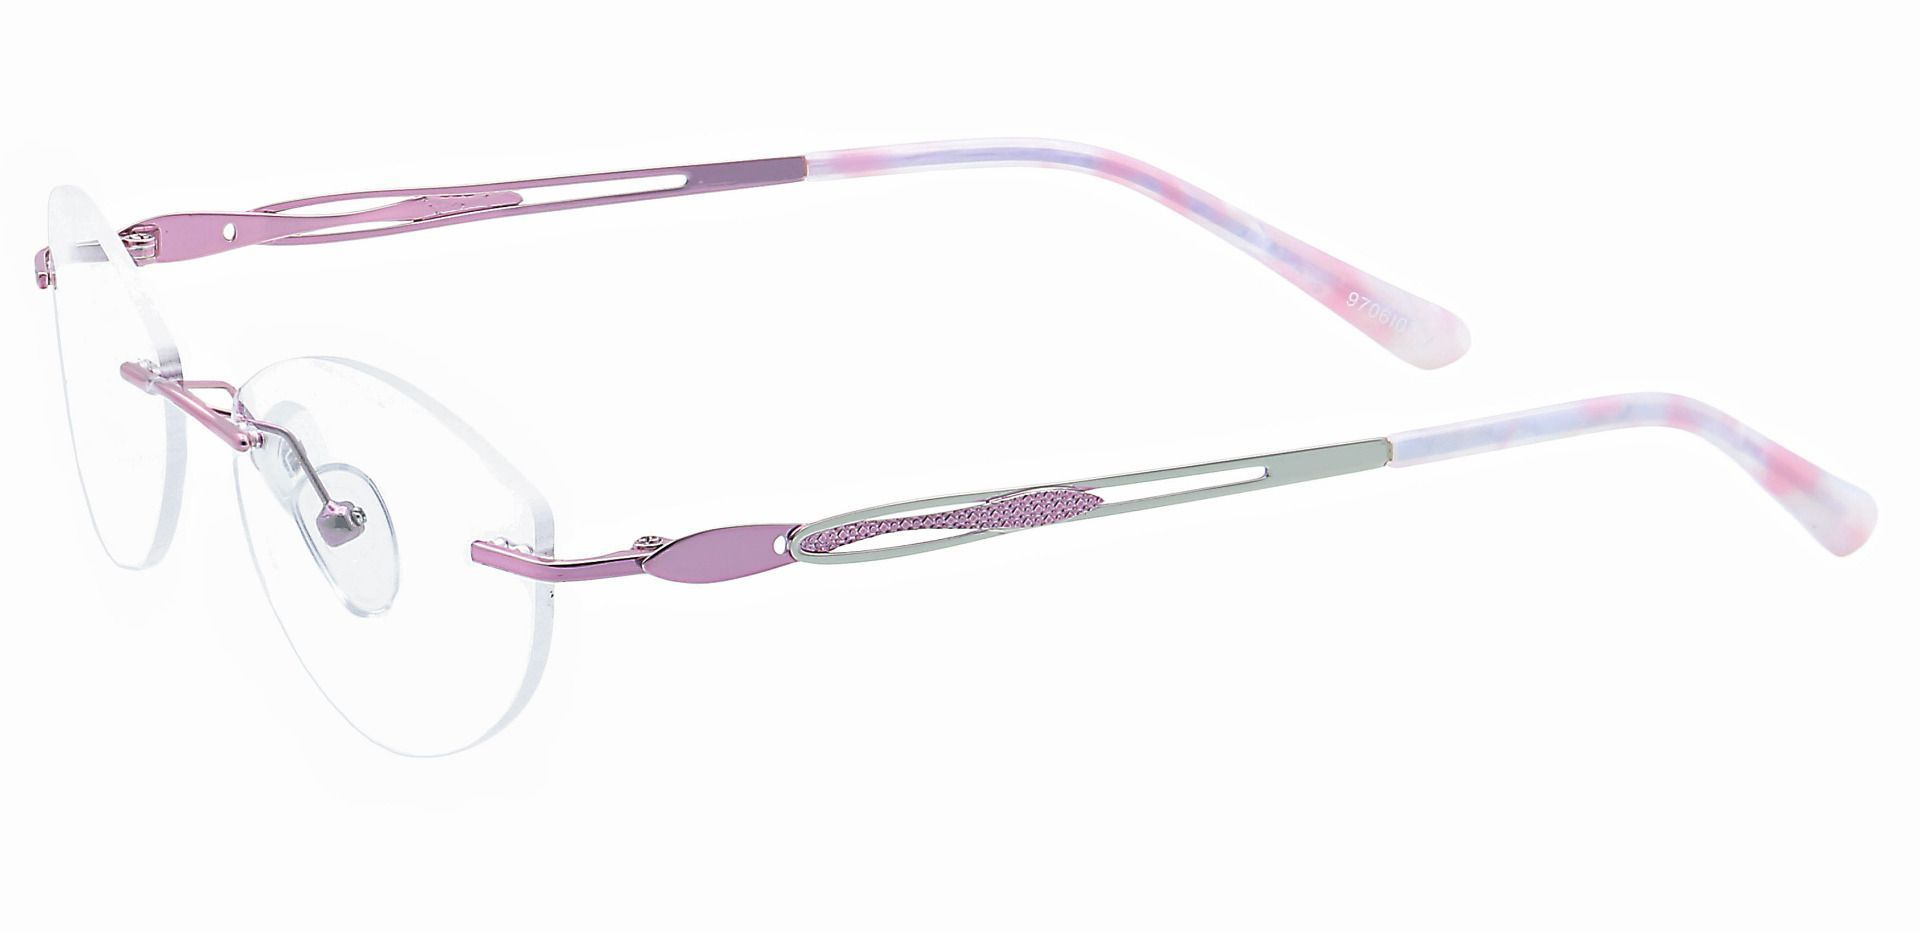 Fairy Rimless Progressive Glasses - Pink